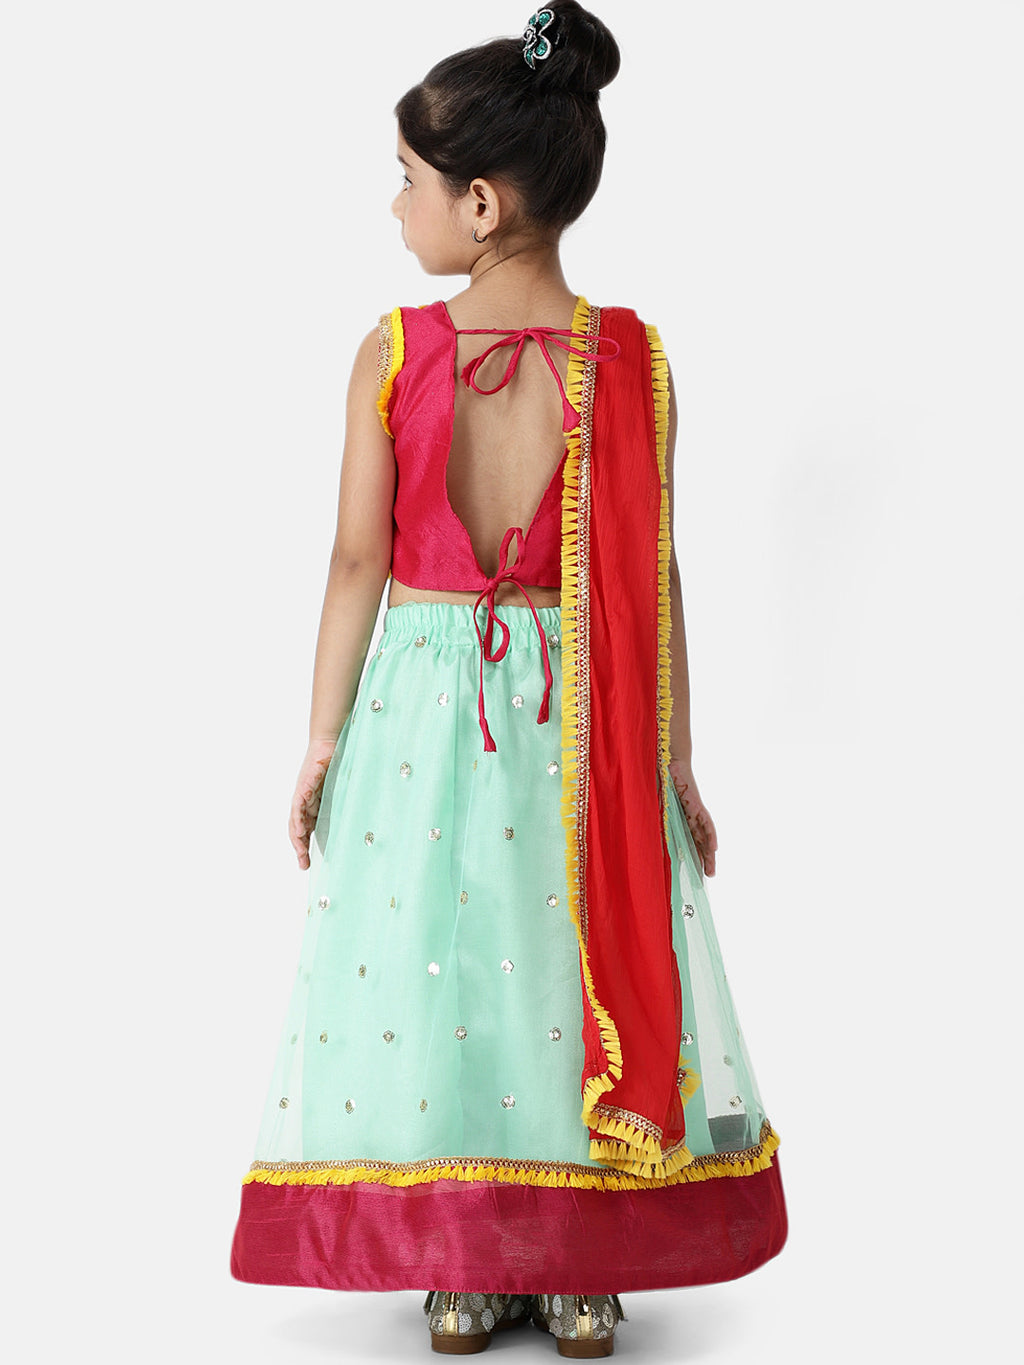 Sequin Net Lehenga Choli For Baby Girl- Light Green